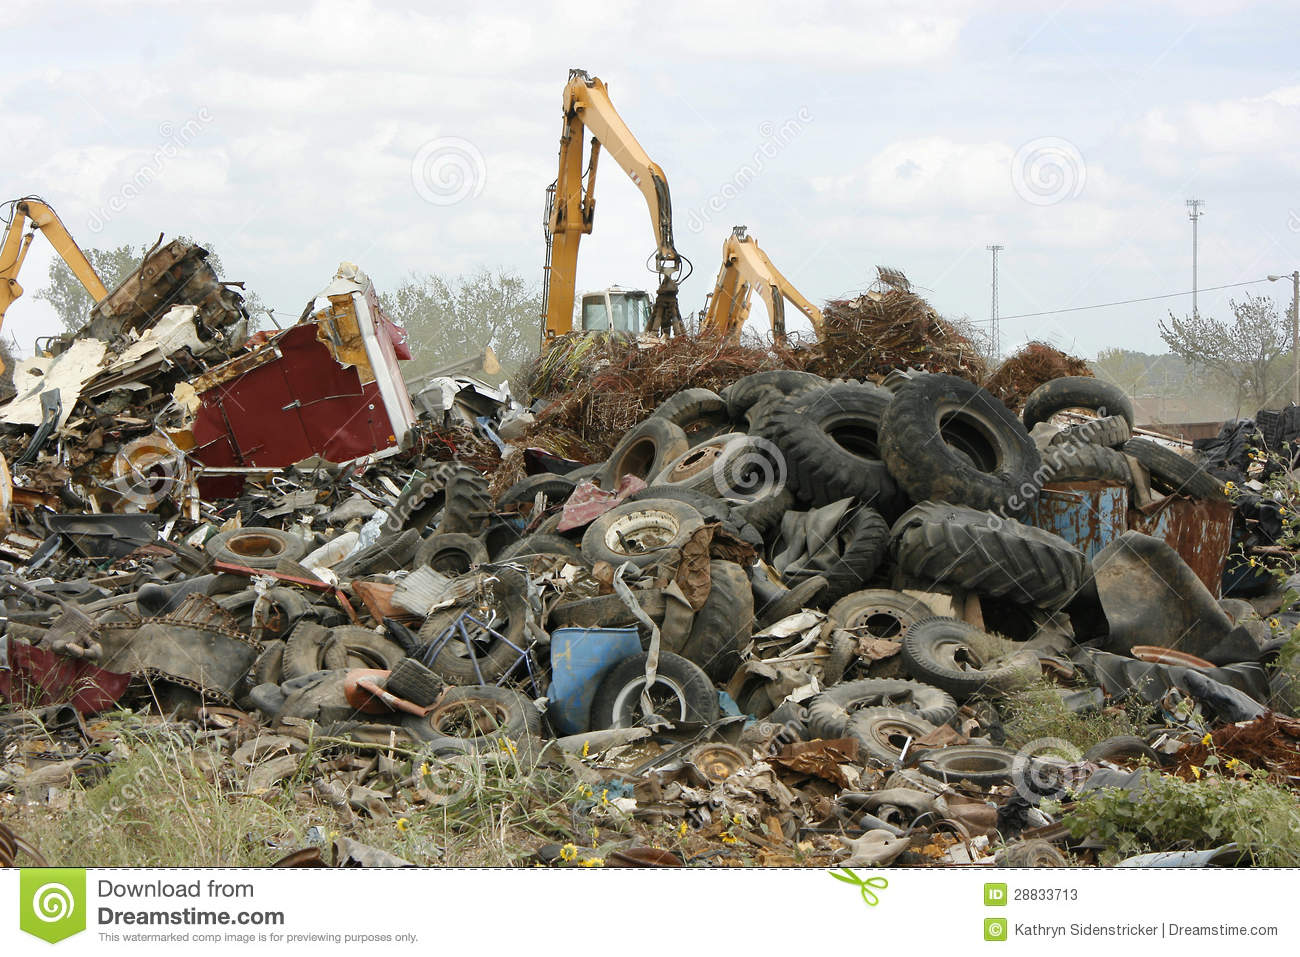 Stock Images Scrap Metal Cubes Piles Scap Bundled Recycling Image32514784 together with Steel Price likewise Copper as well Scrap Metal Buyer Near Wayne as well Steel. on aluminum wire scrap prices